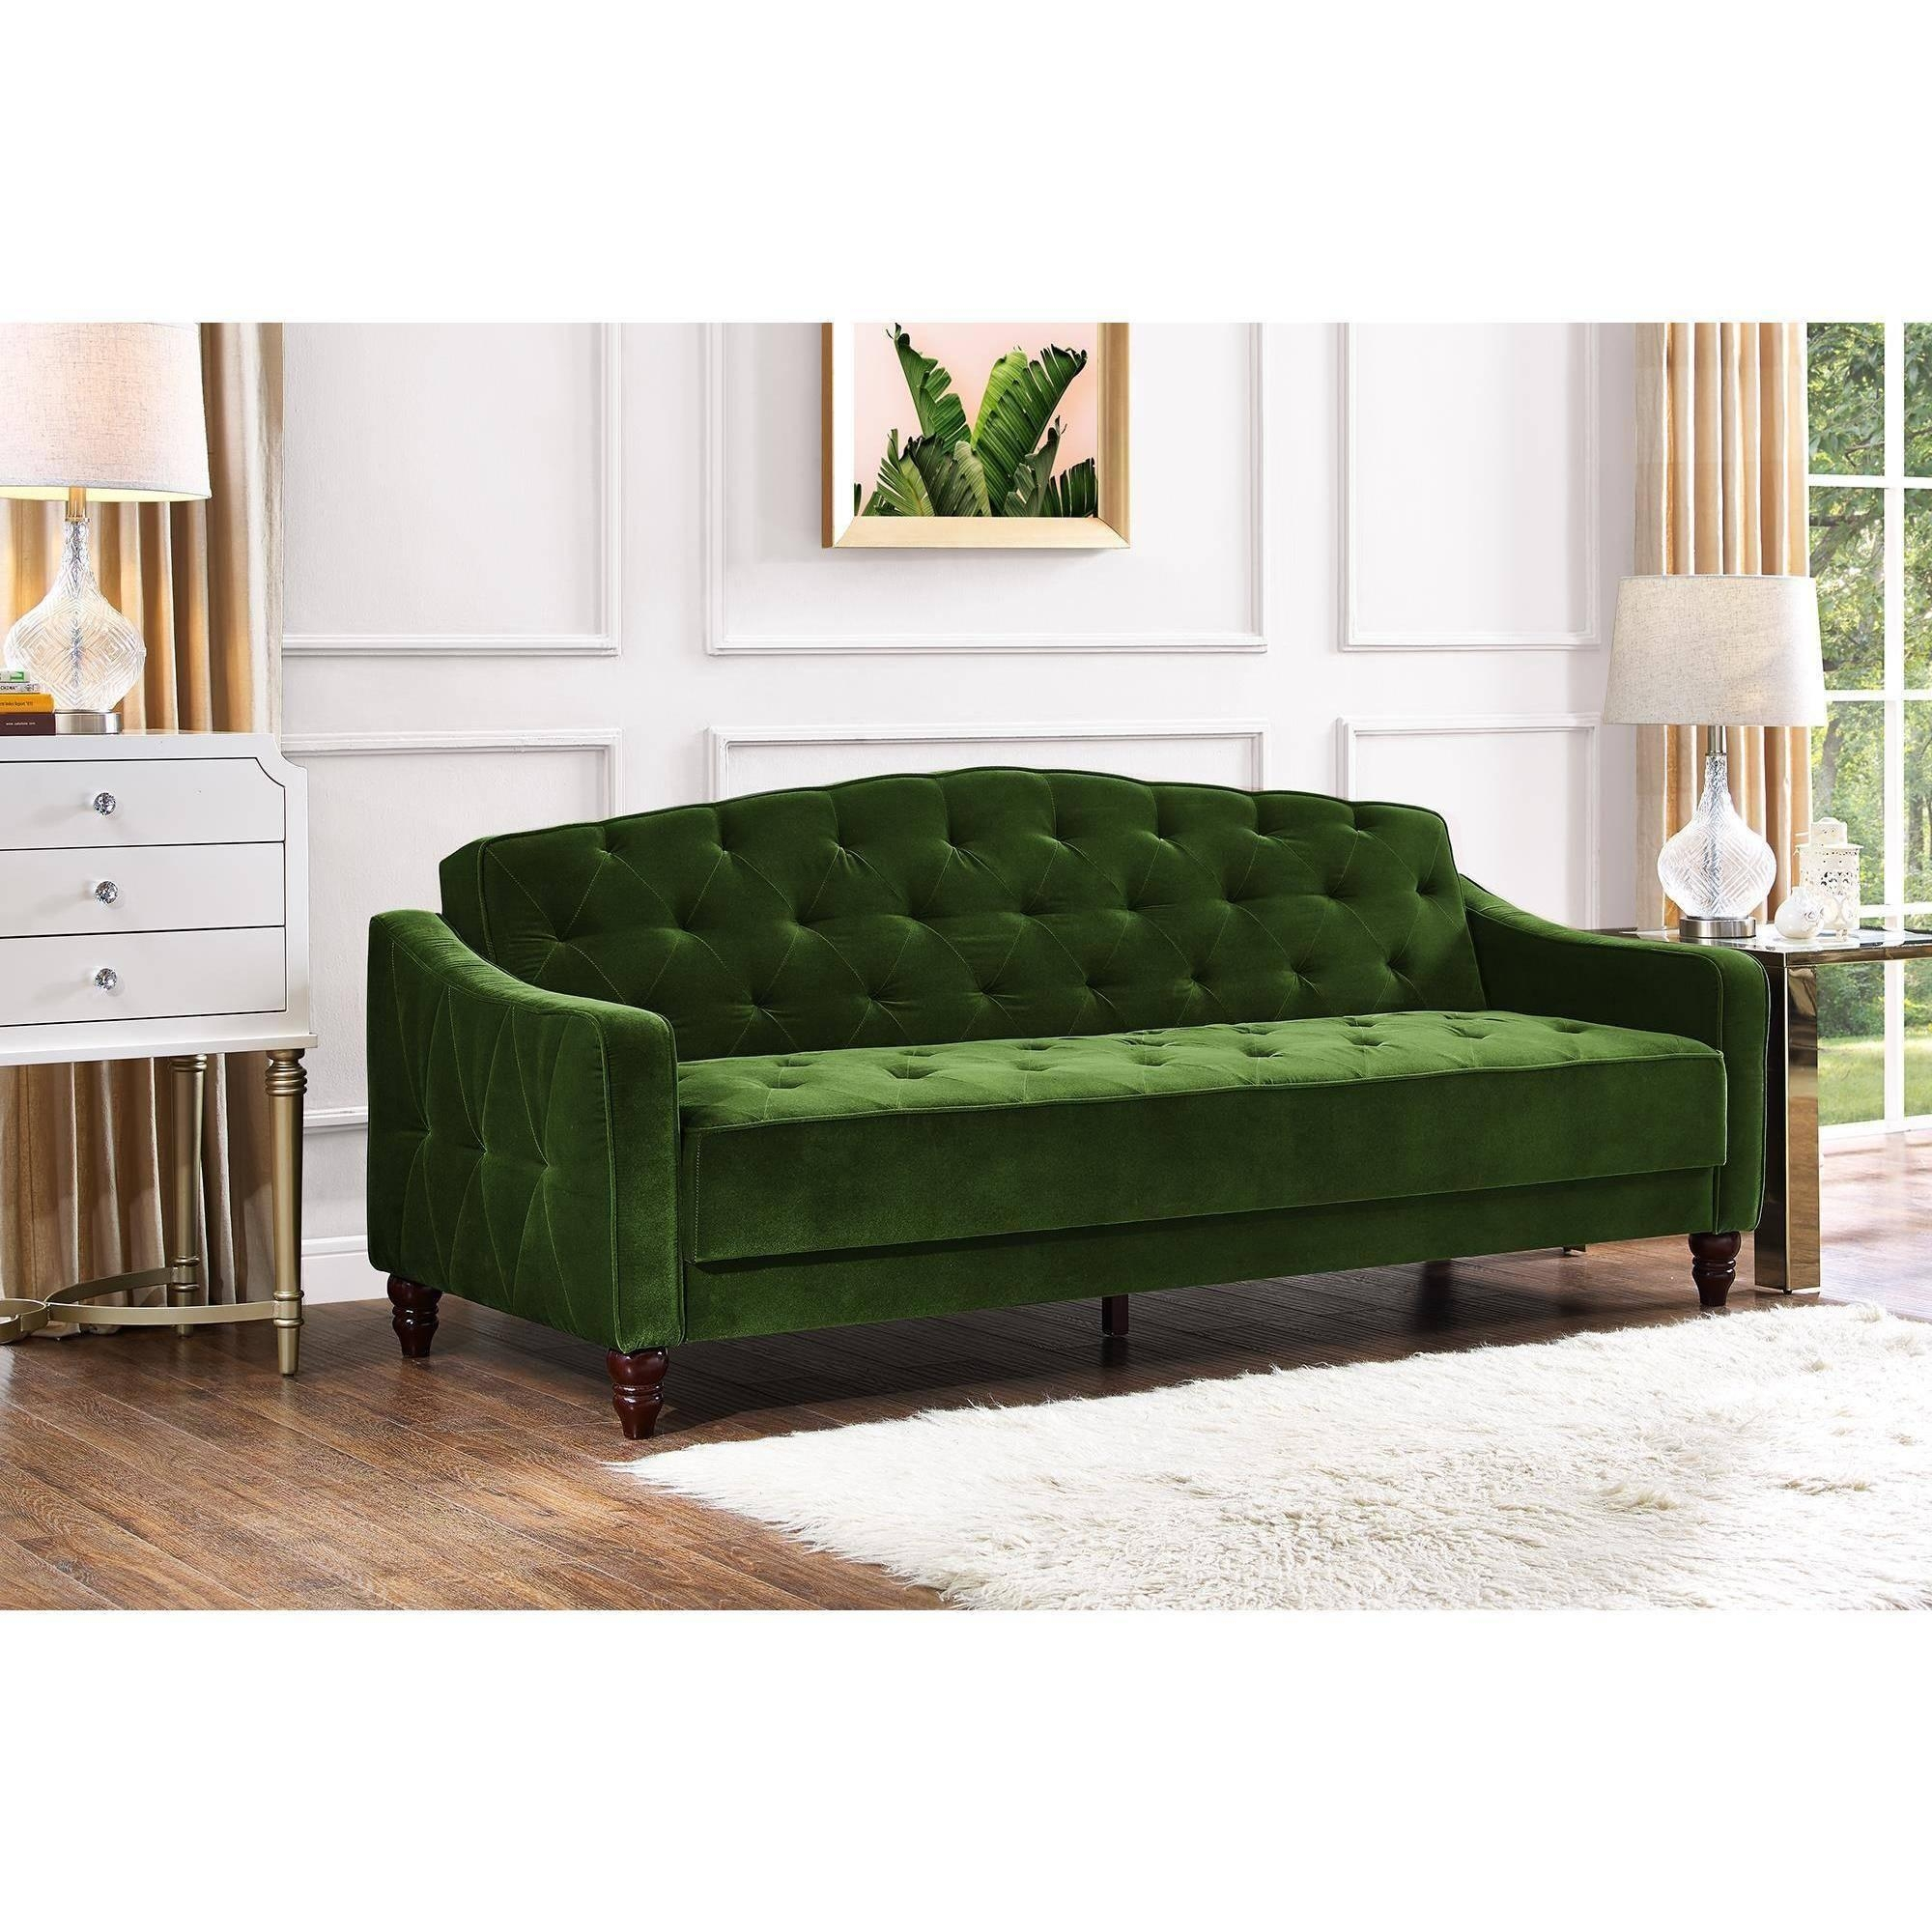 Novogratz Vintage Tufted Sofa Sleeper Ii, Multiple Colors intended for Tufted Sleeper Sofas